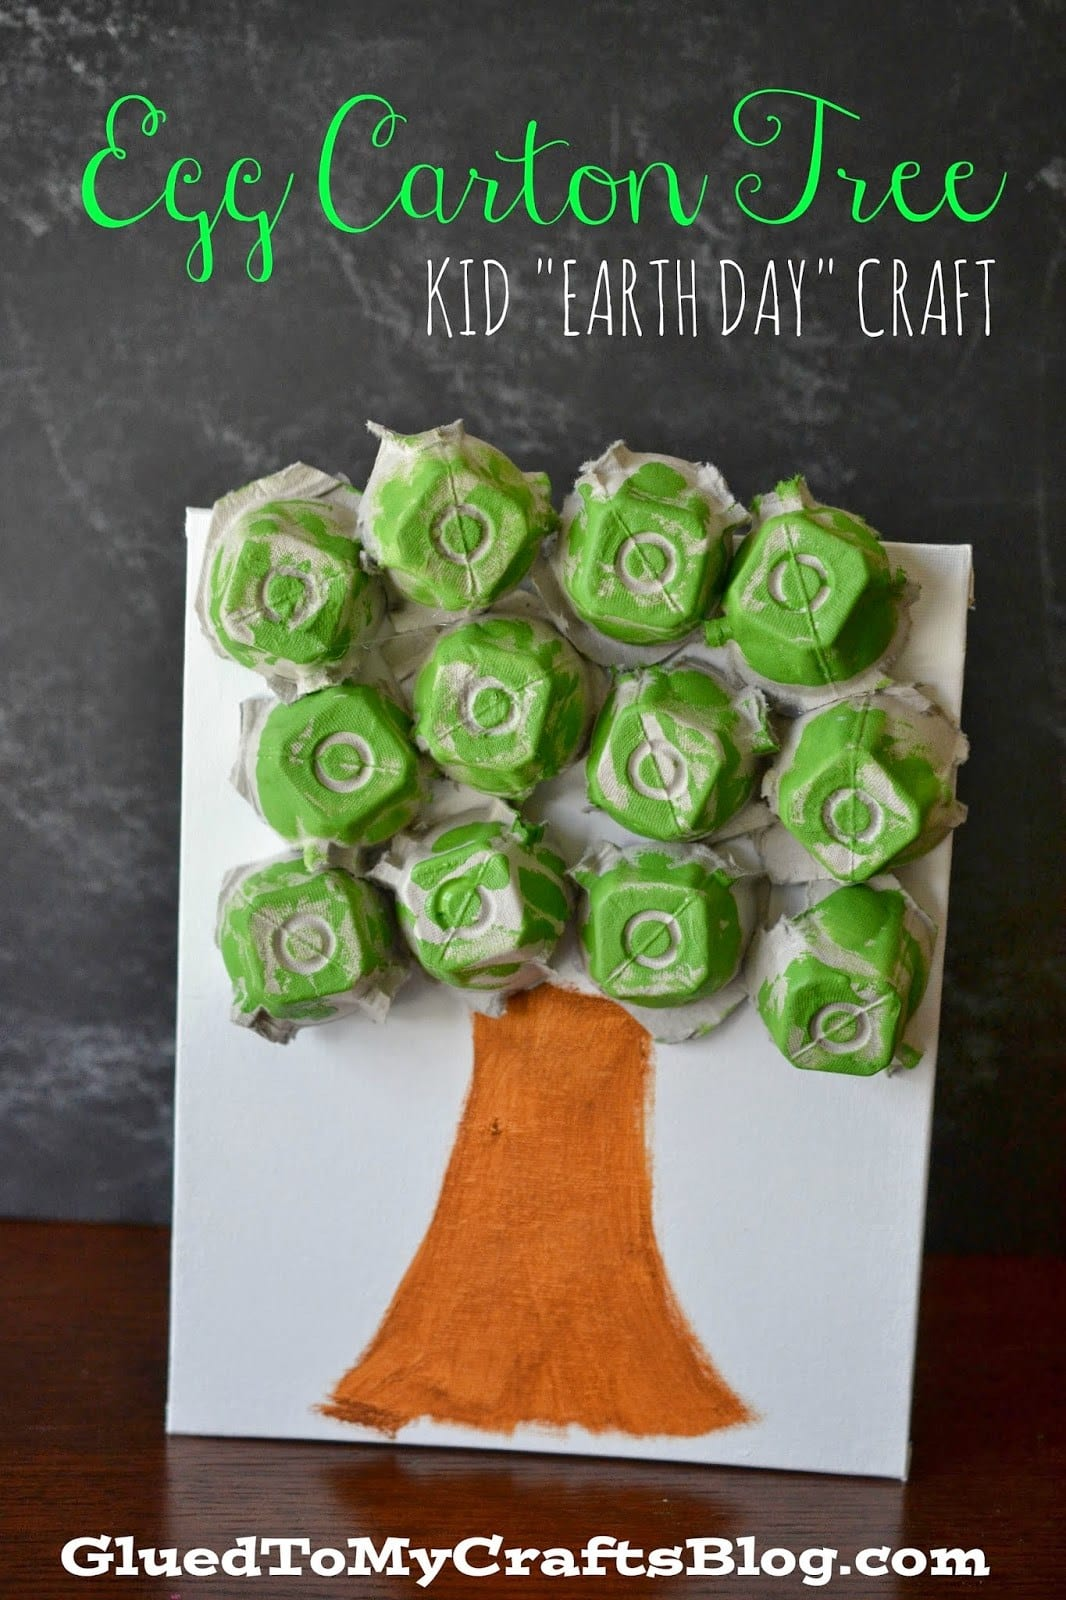 recycled egg carton tree craft